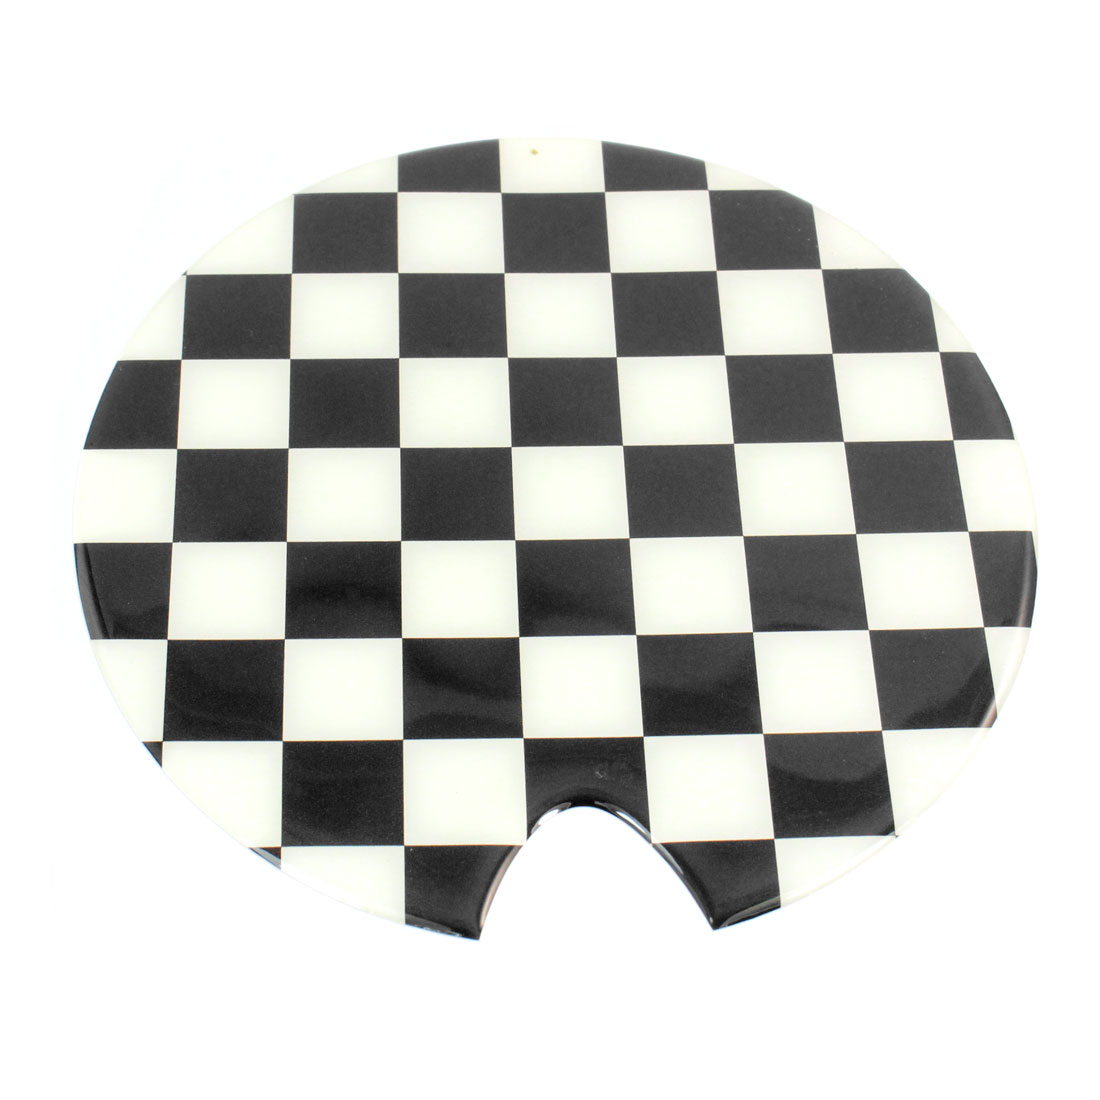 Black White Round Oil Tank Pad Sticker Decor for Car Auto